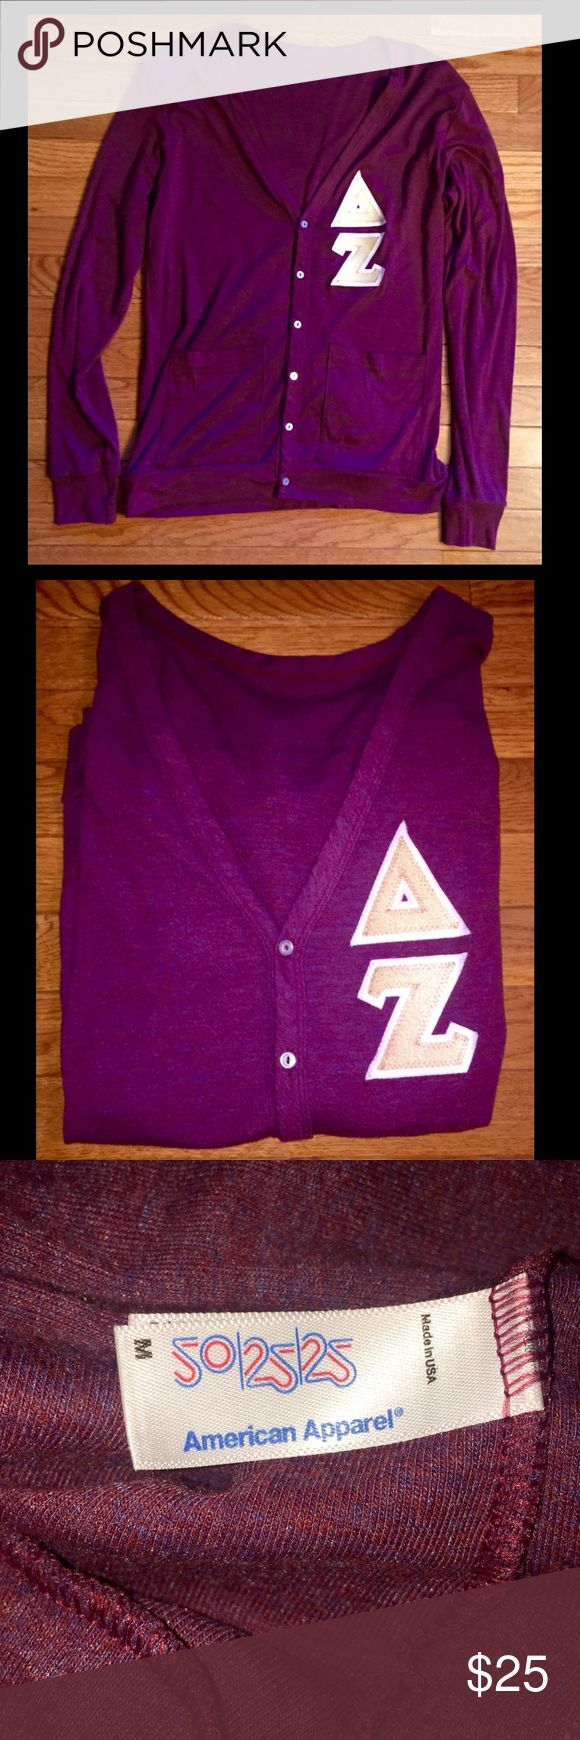 Delta Zeta American Apparel Cardigan!!! Beautiful American Apparel maroon button down cardigan with gold 3 inch Delta Zeta letters with a white border! Only worn 2 times and in excellent condition! Fabric is very soft and comfortable! 💗💚 American Apparel Sweaters Cardigans